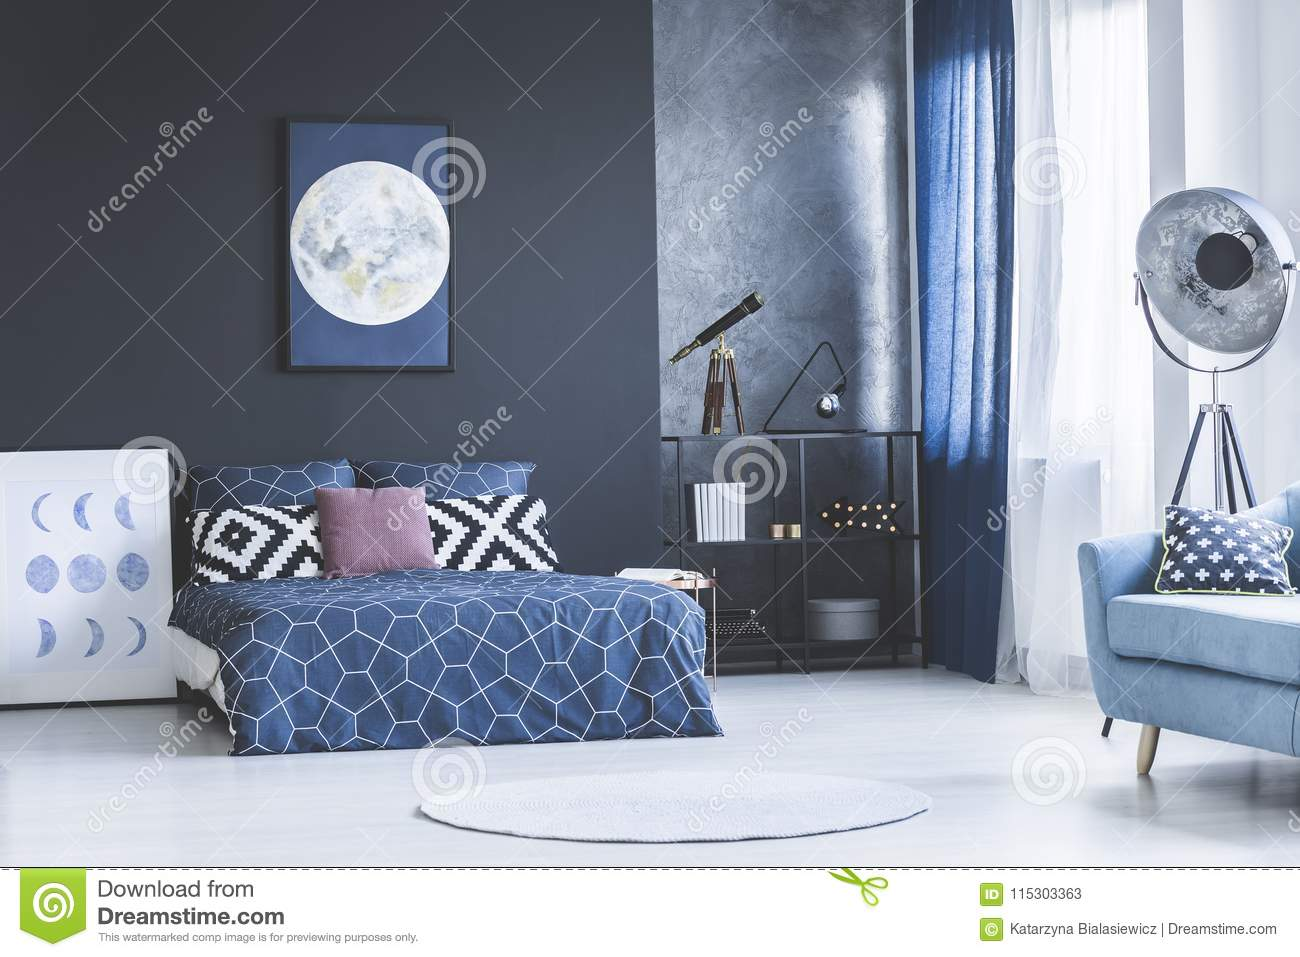 Navy blue bedroom interior